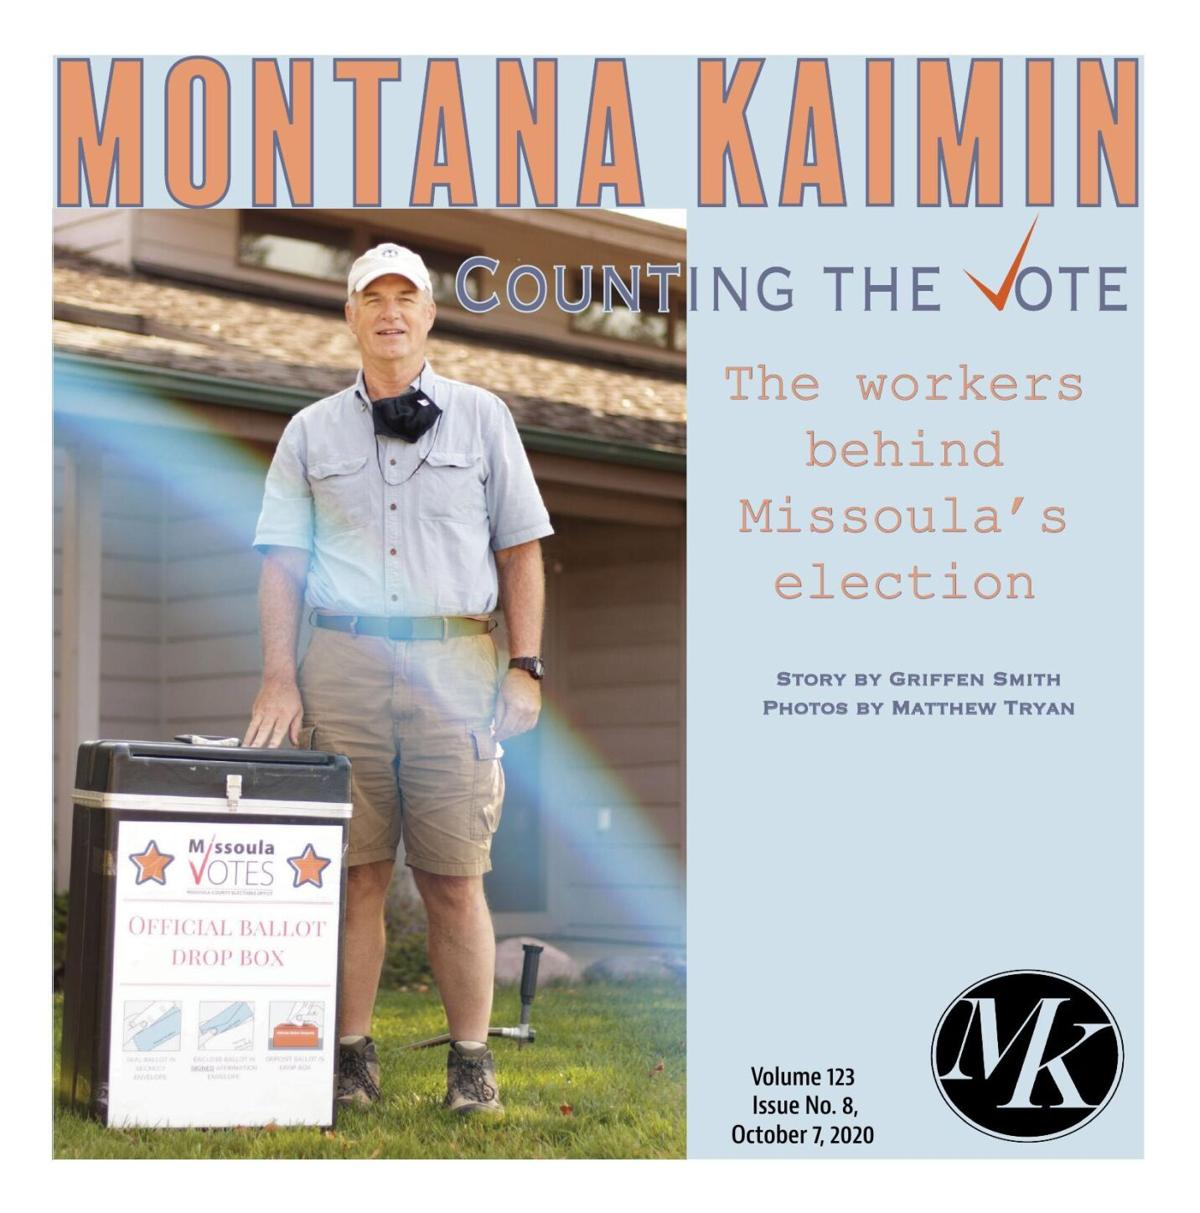 Montana Kaimin | Vol 123 Issue no. 08 10.07.2020